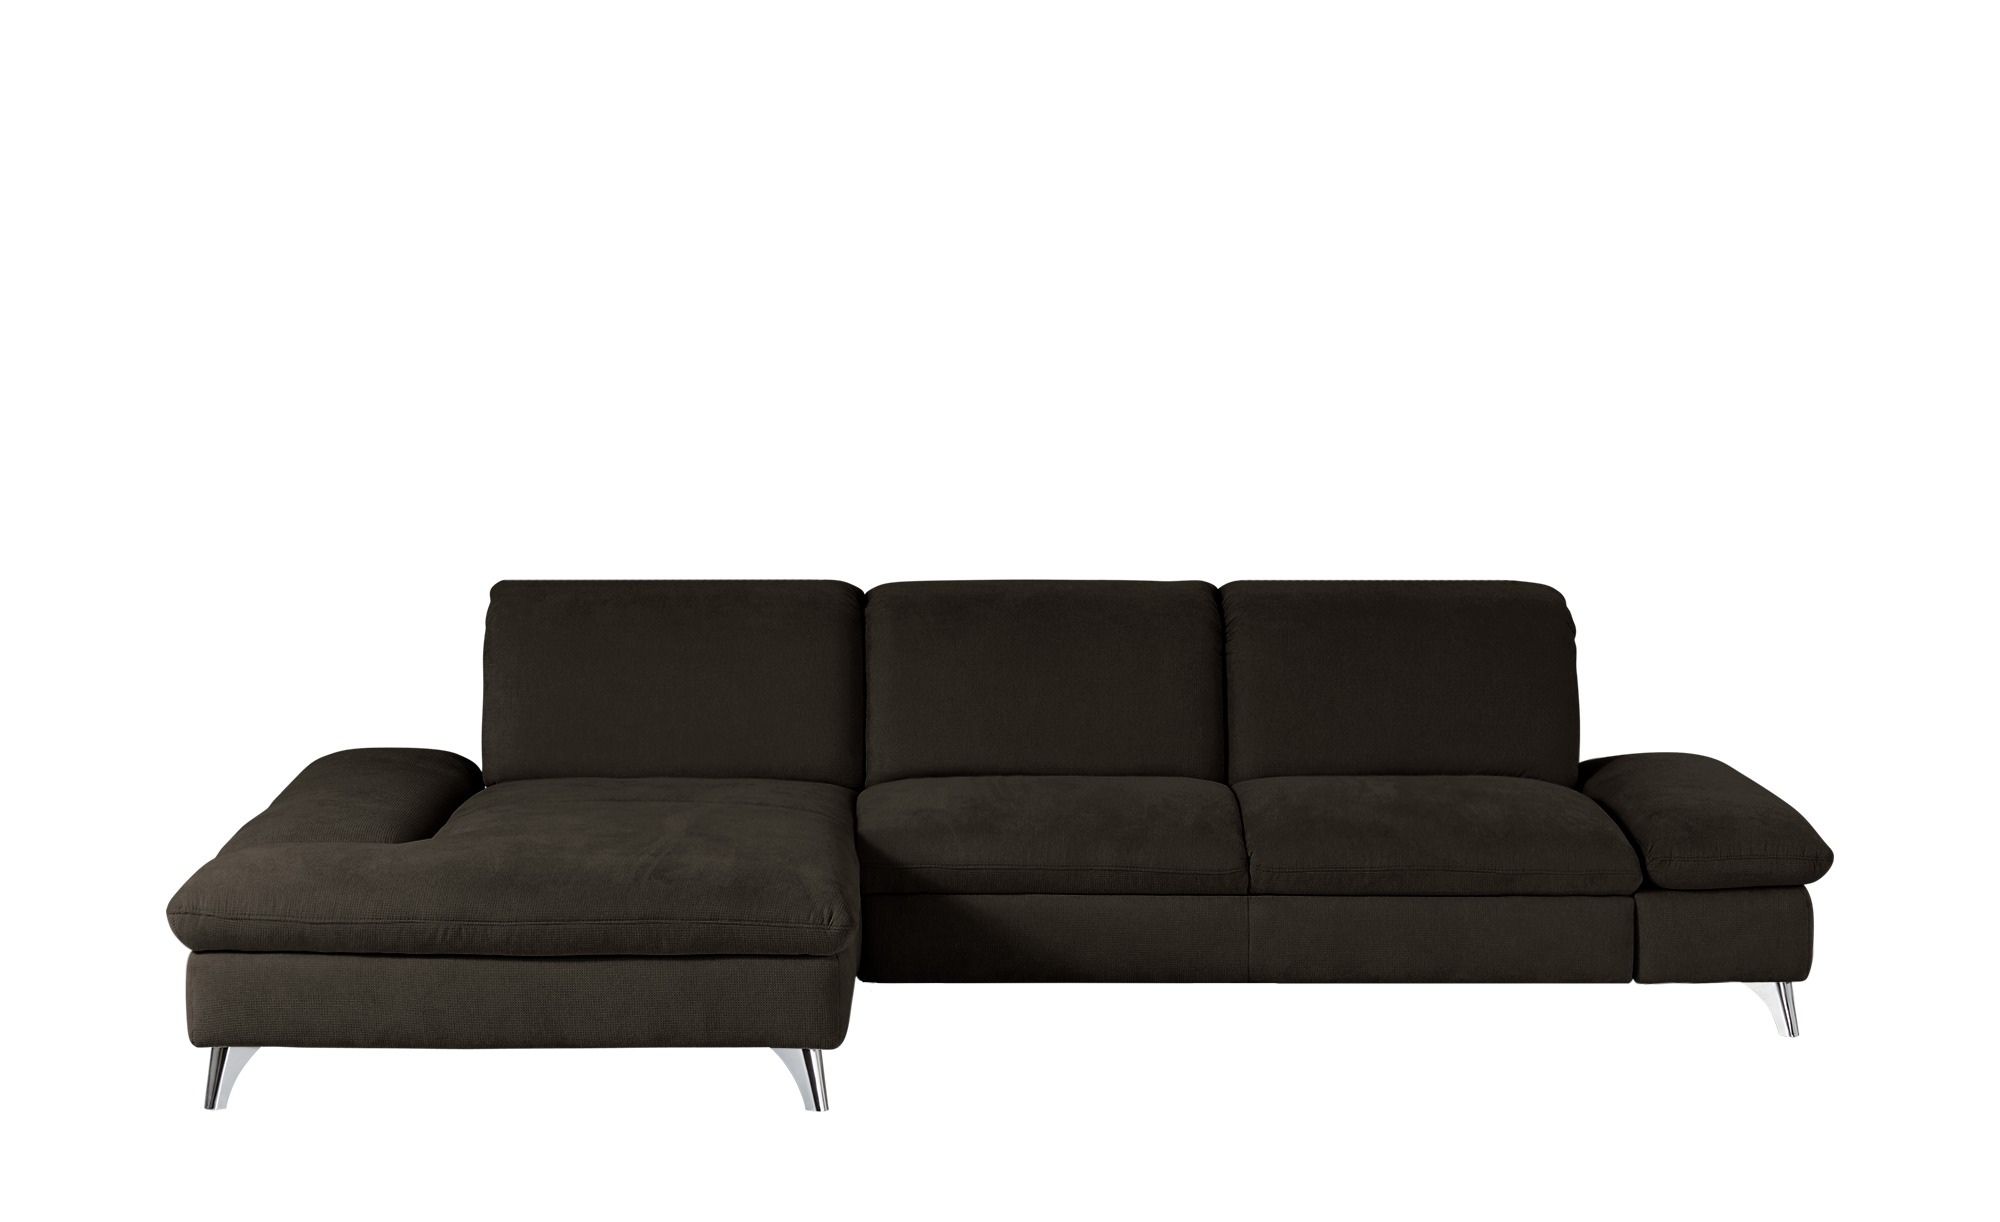 Couch Kaufen Munchen Ecksofa Mit Schlaffunktion Wohnzimmer Chesterfield Sofa For Sale Melbourne Schlafcouch Billi Big Sofa Kaufen Couch Kaufen Sofa Leder